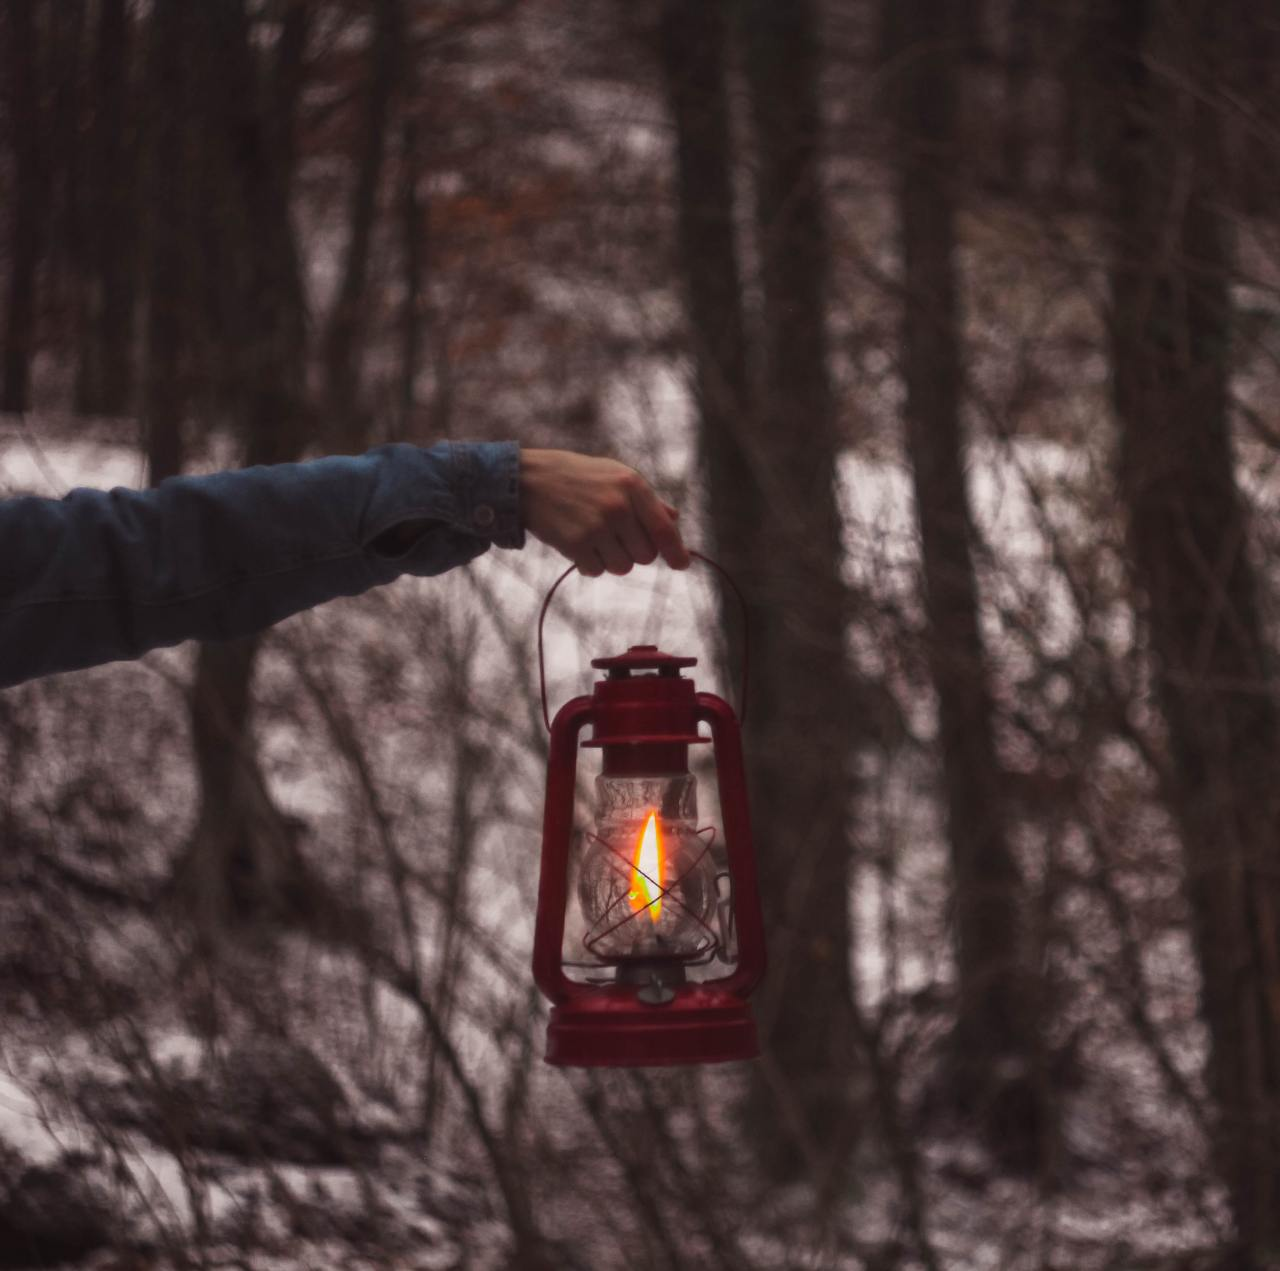 Hand holding lantern in a forest